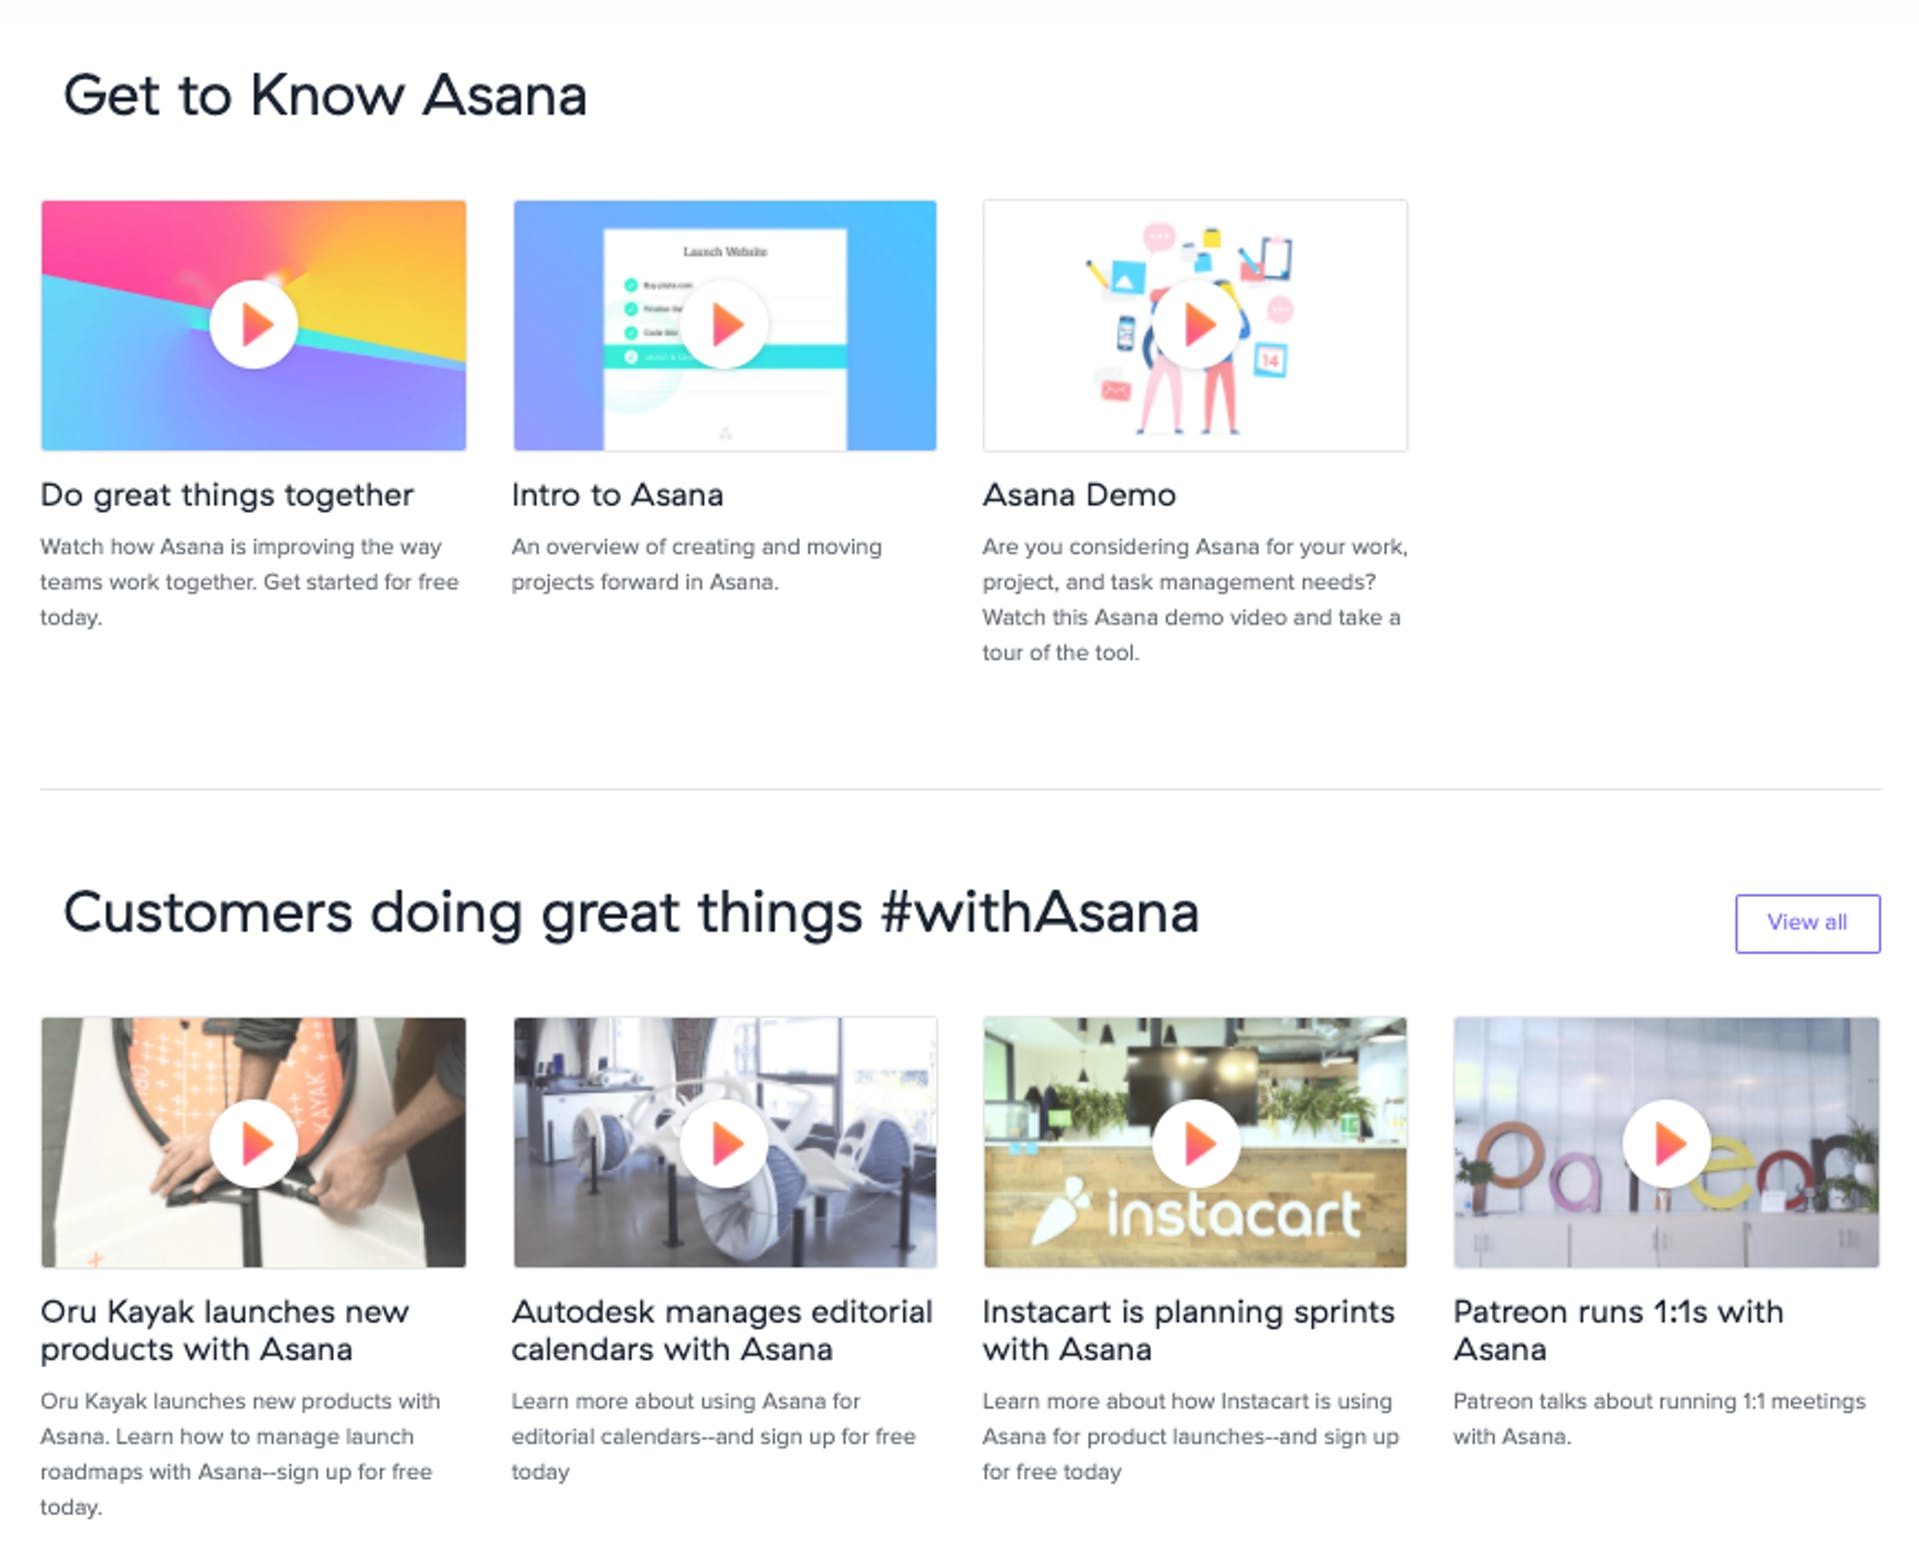 Asana's video page hosts its brand and product videos as well as client testimonials